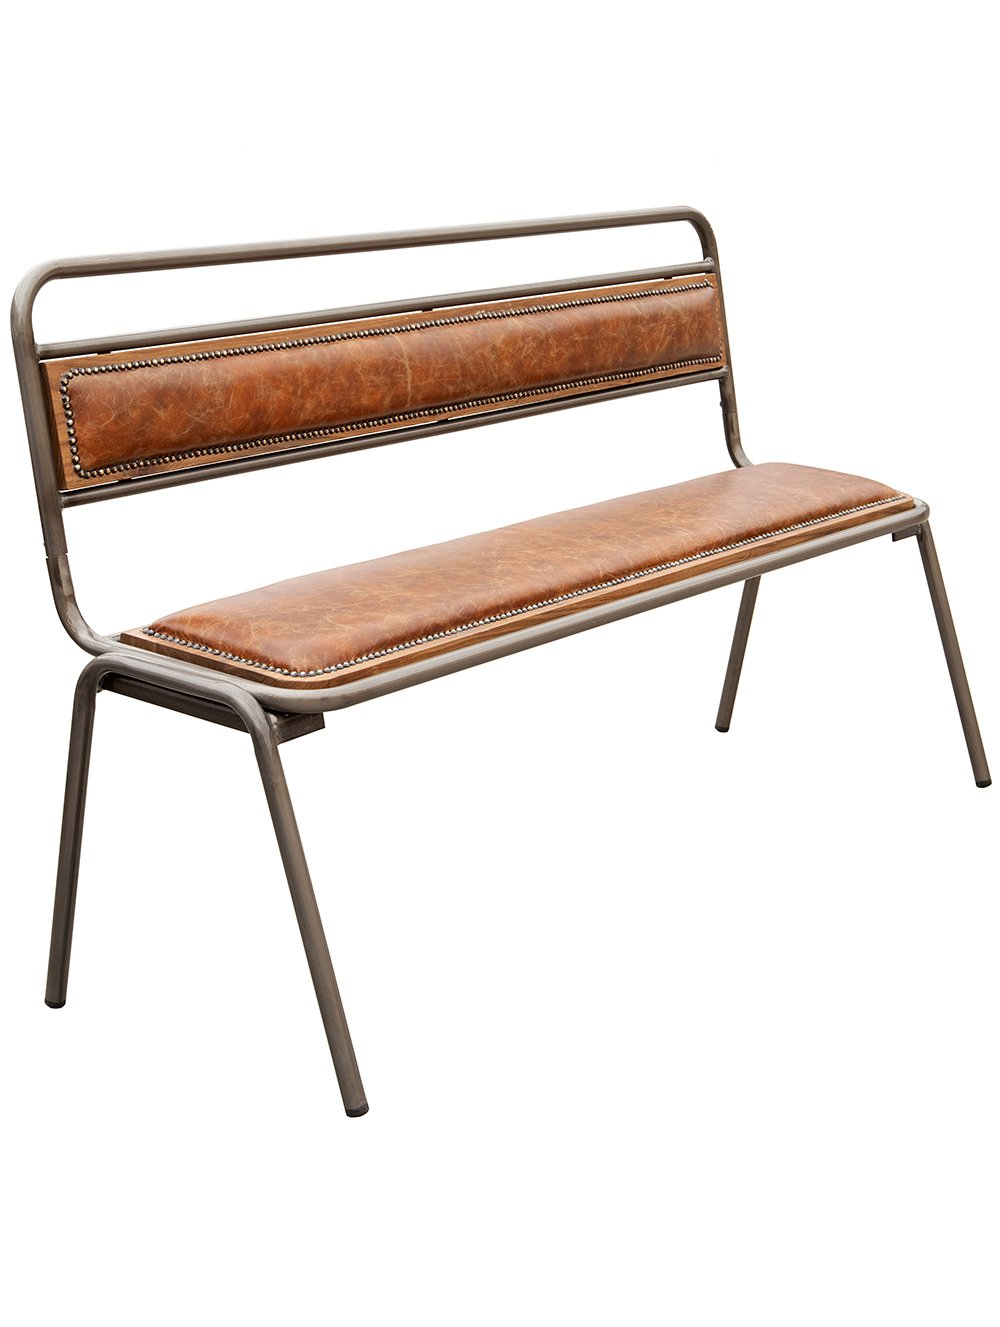 Chelsea Stacking Bench